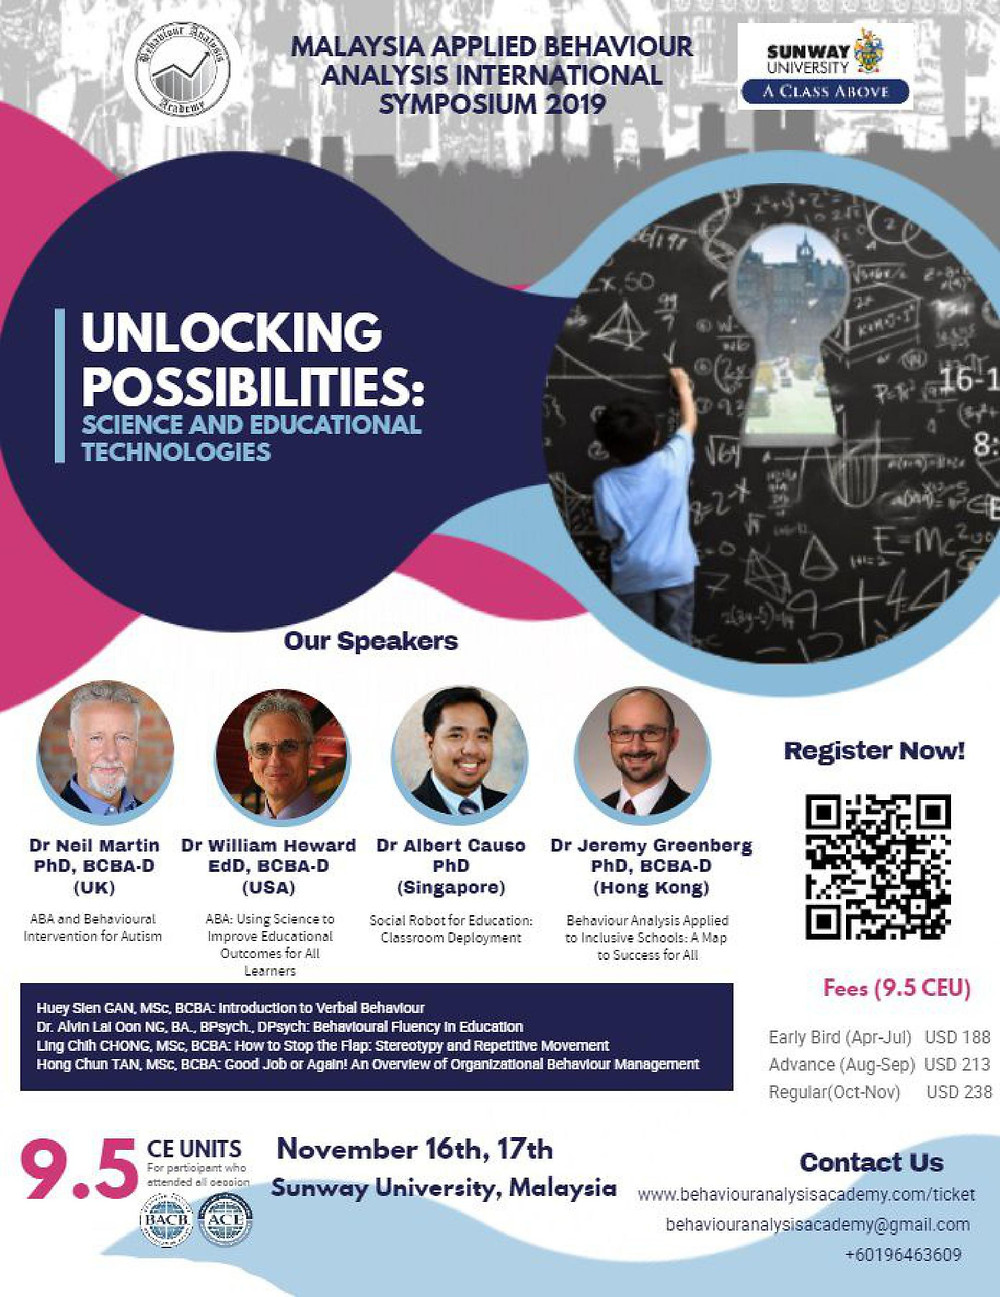 Conference in KL Malaysia Nov 16-17 2019